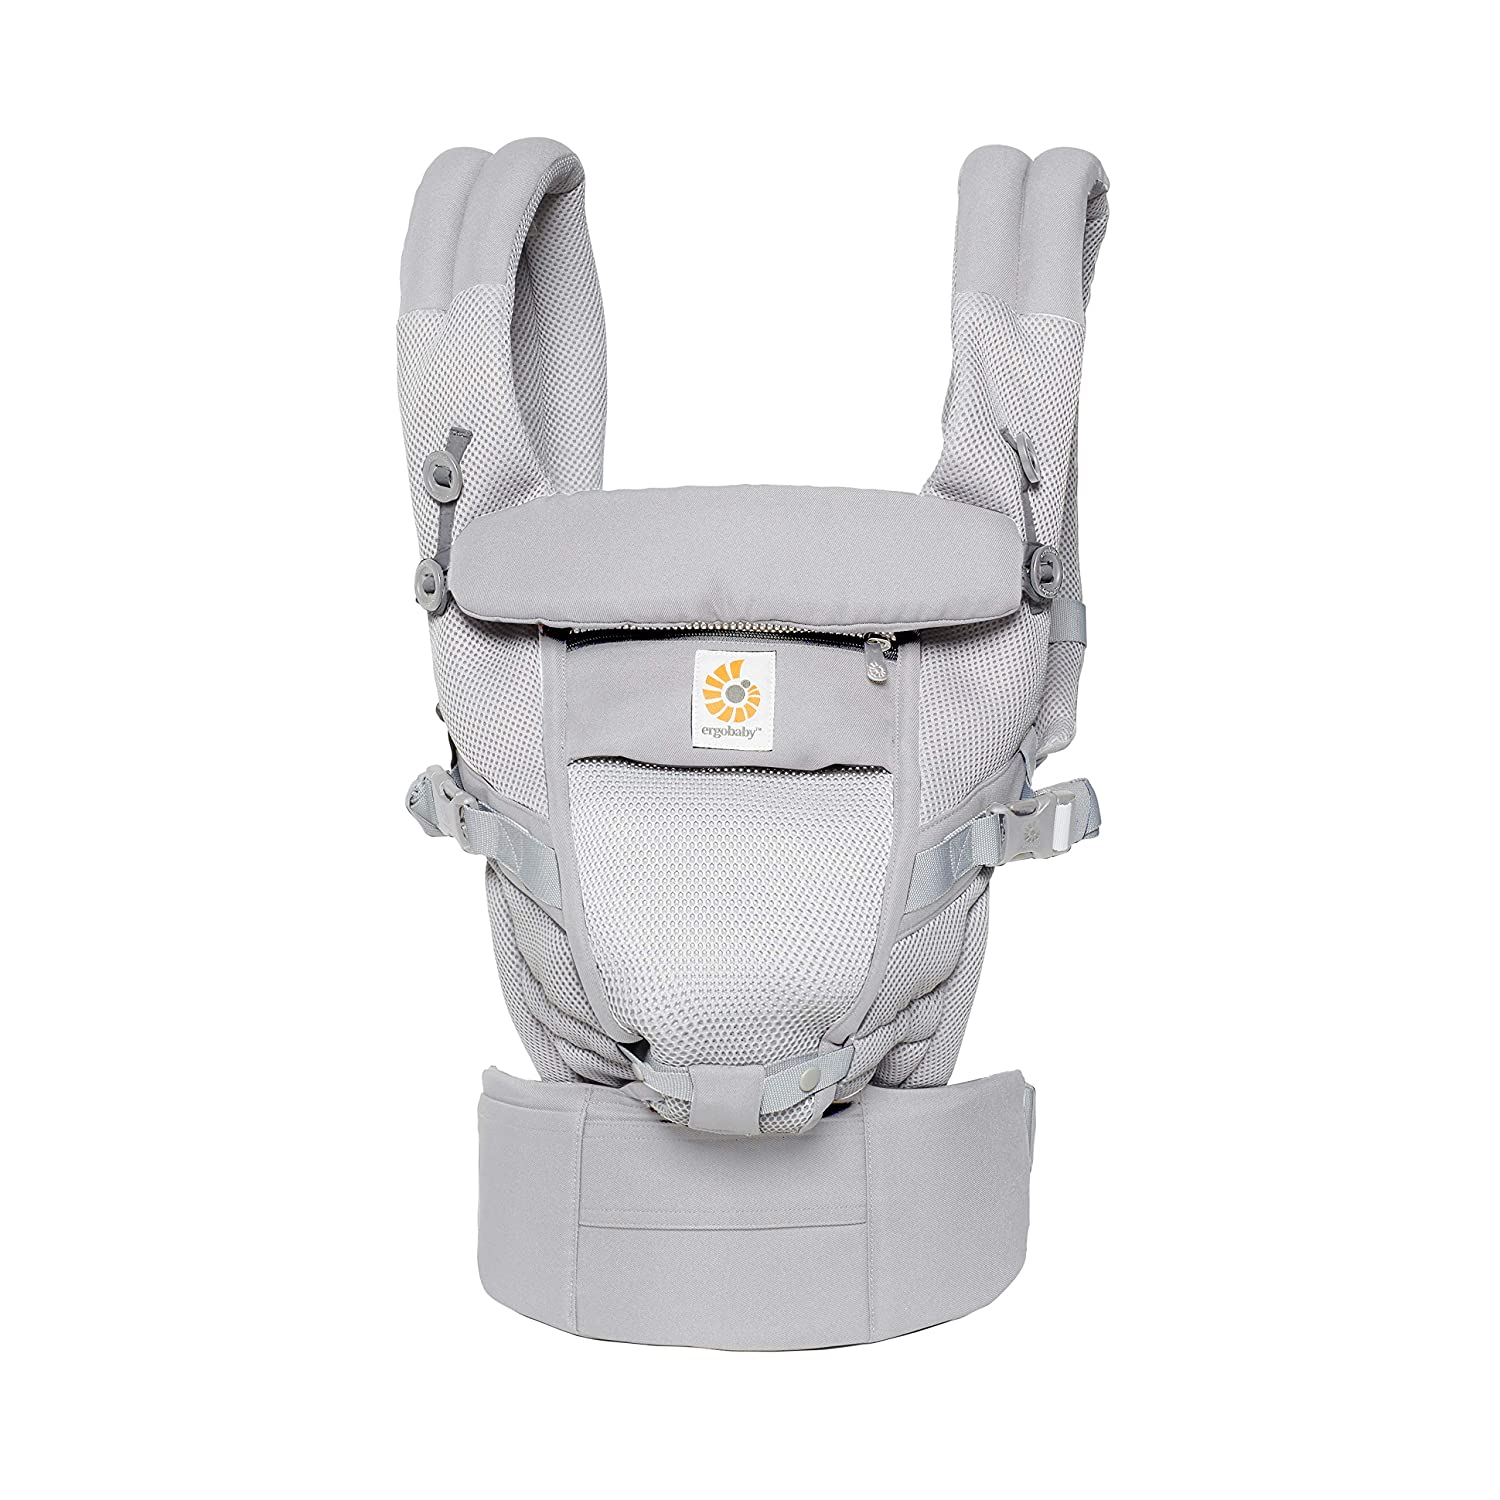 c2d8c97e966 Amazon.com   Ergobaby Adapt Baby Carrier